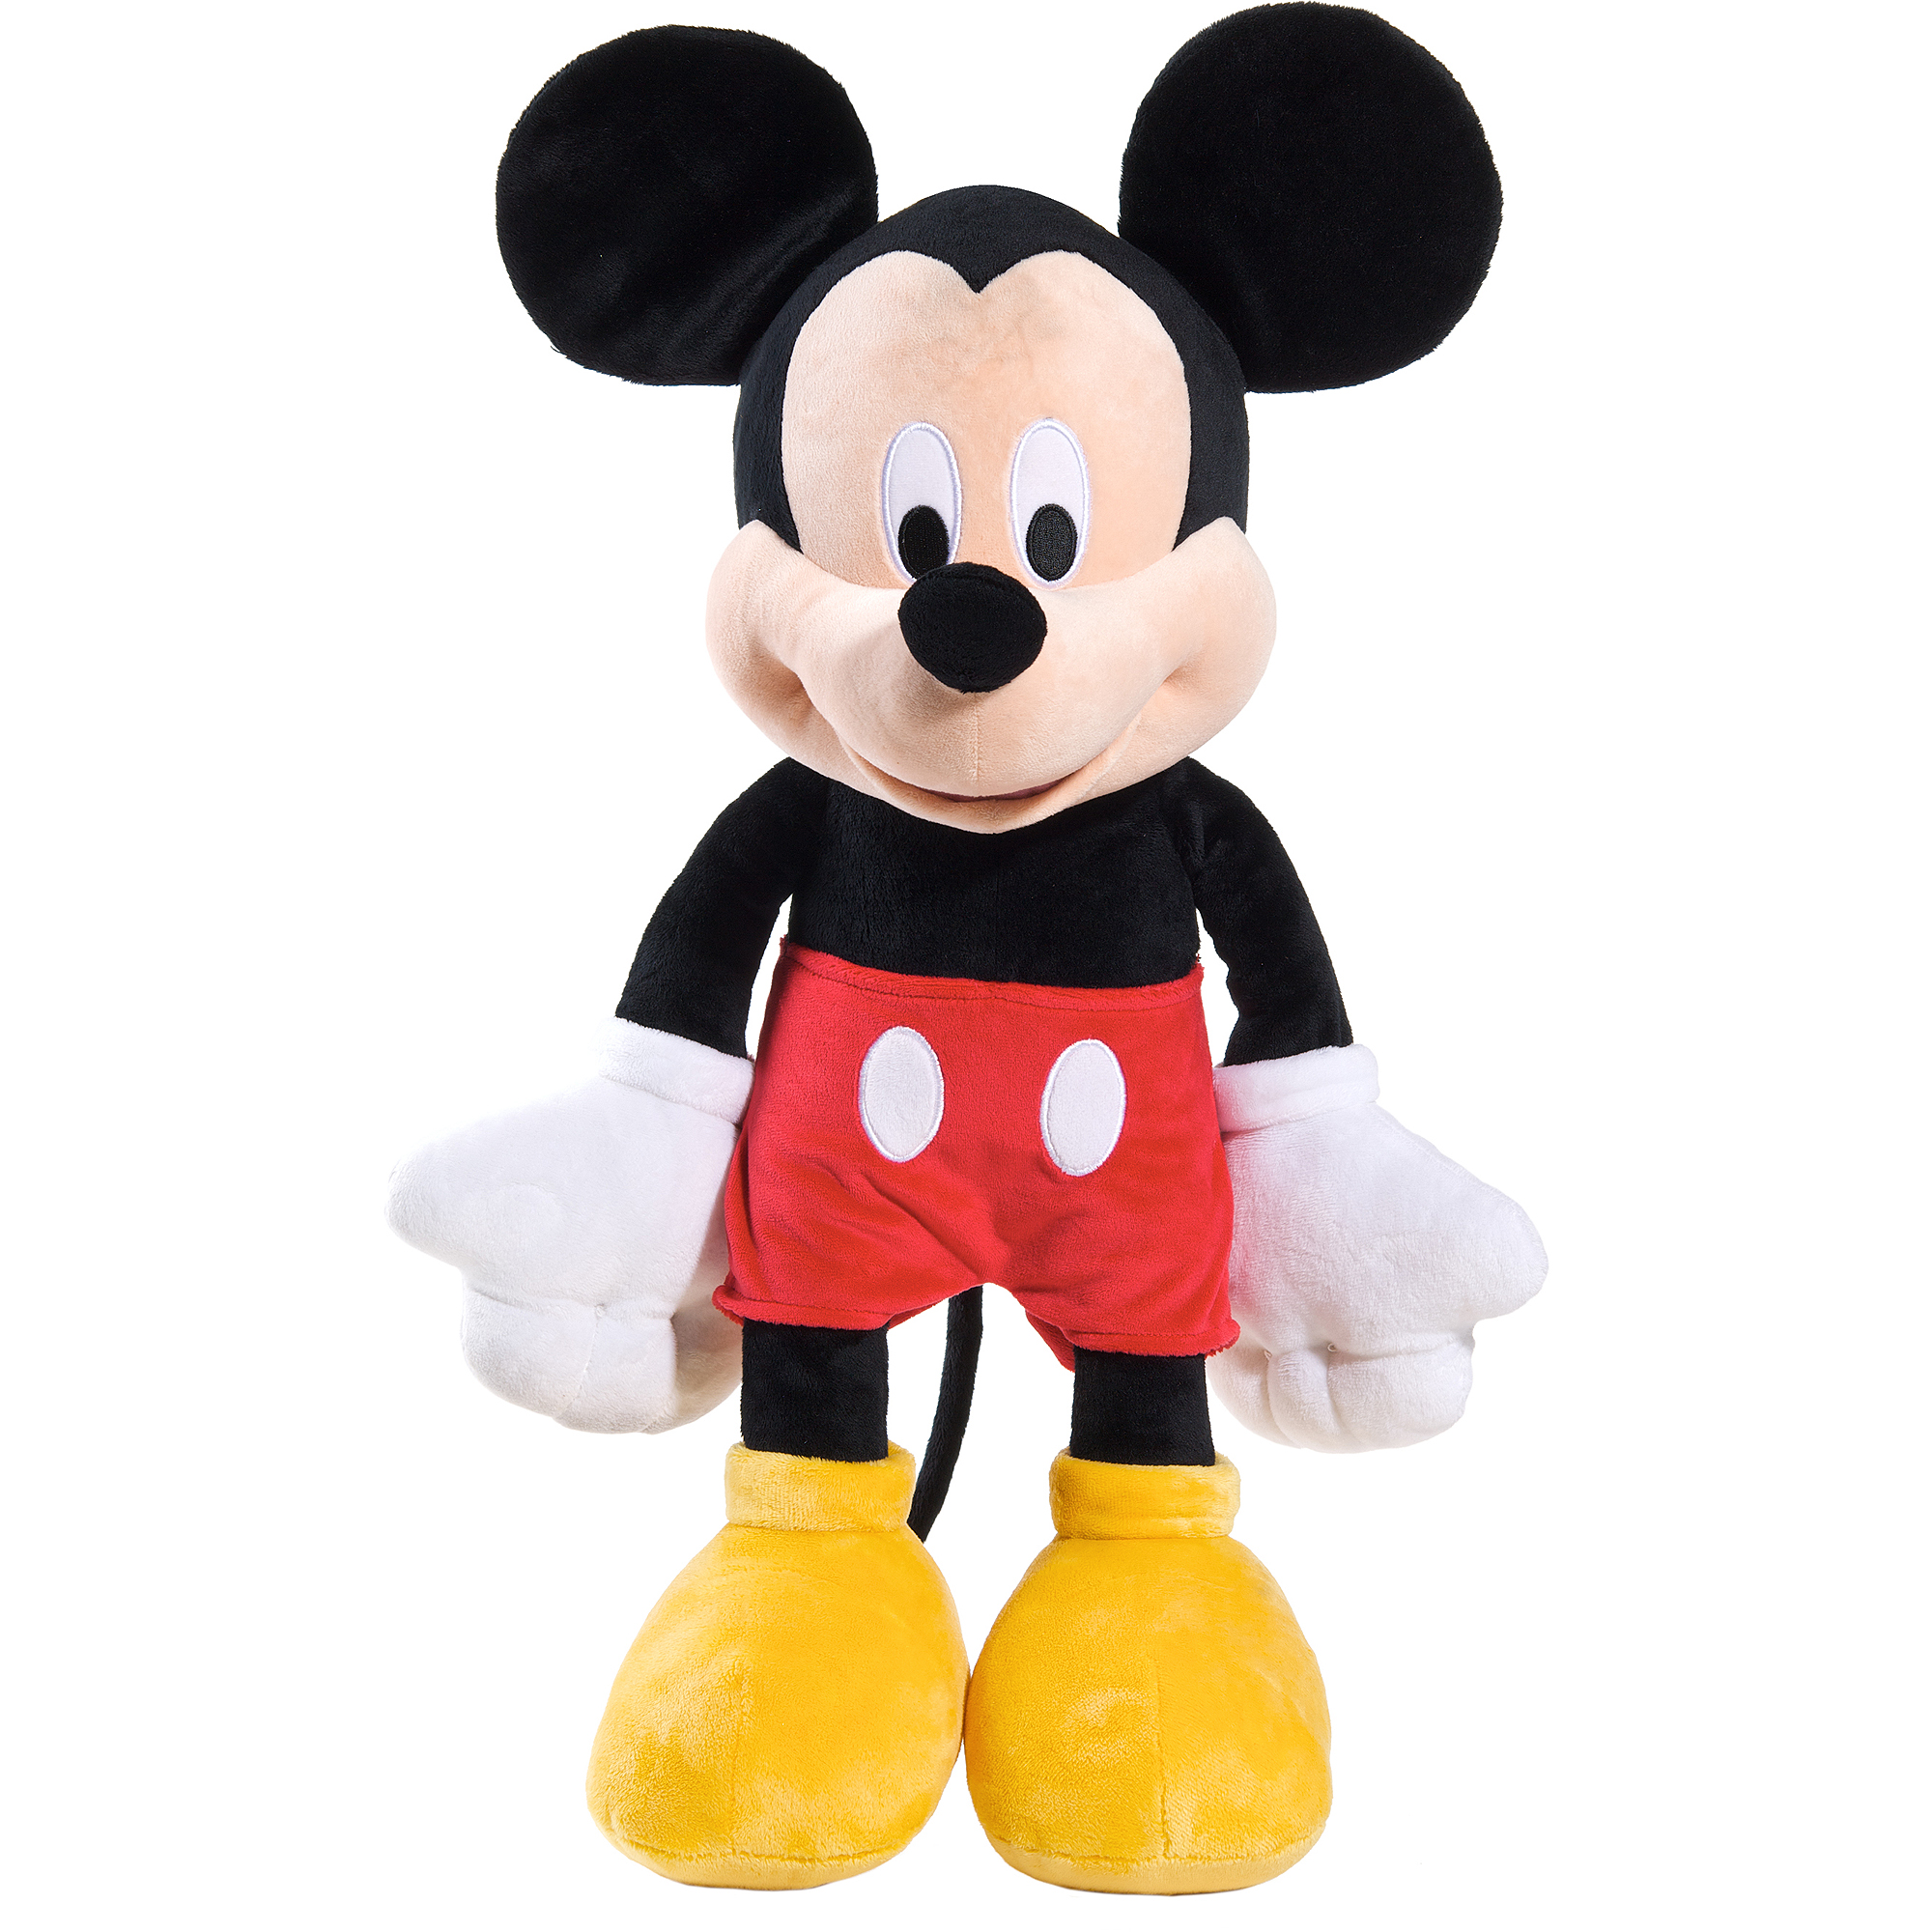 Disney Classic Large Plush Mickey Mouse